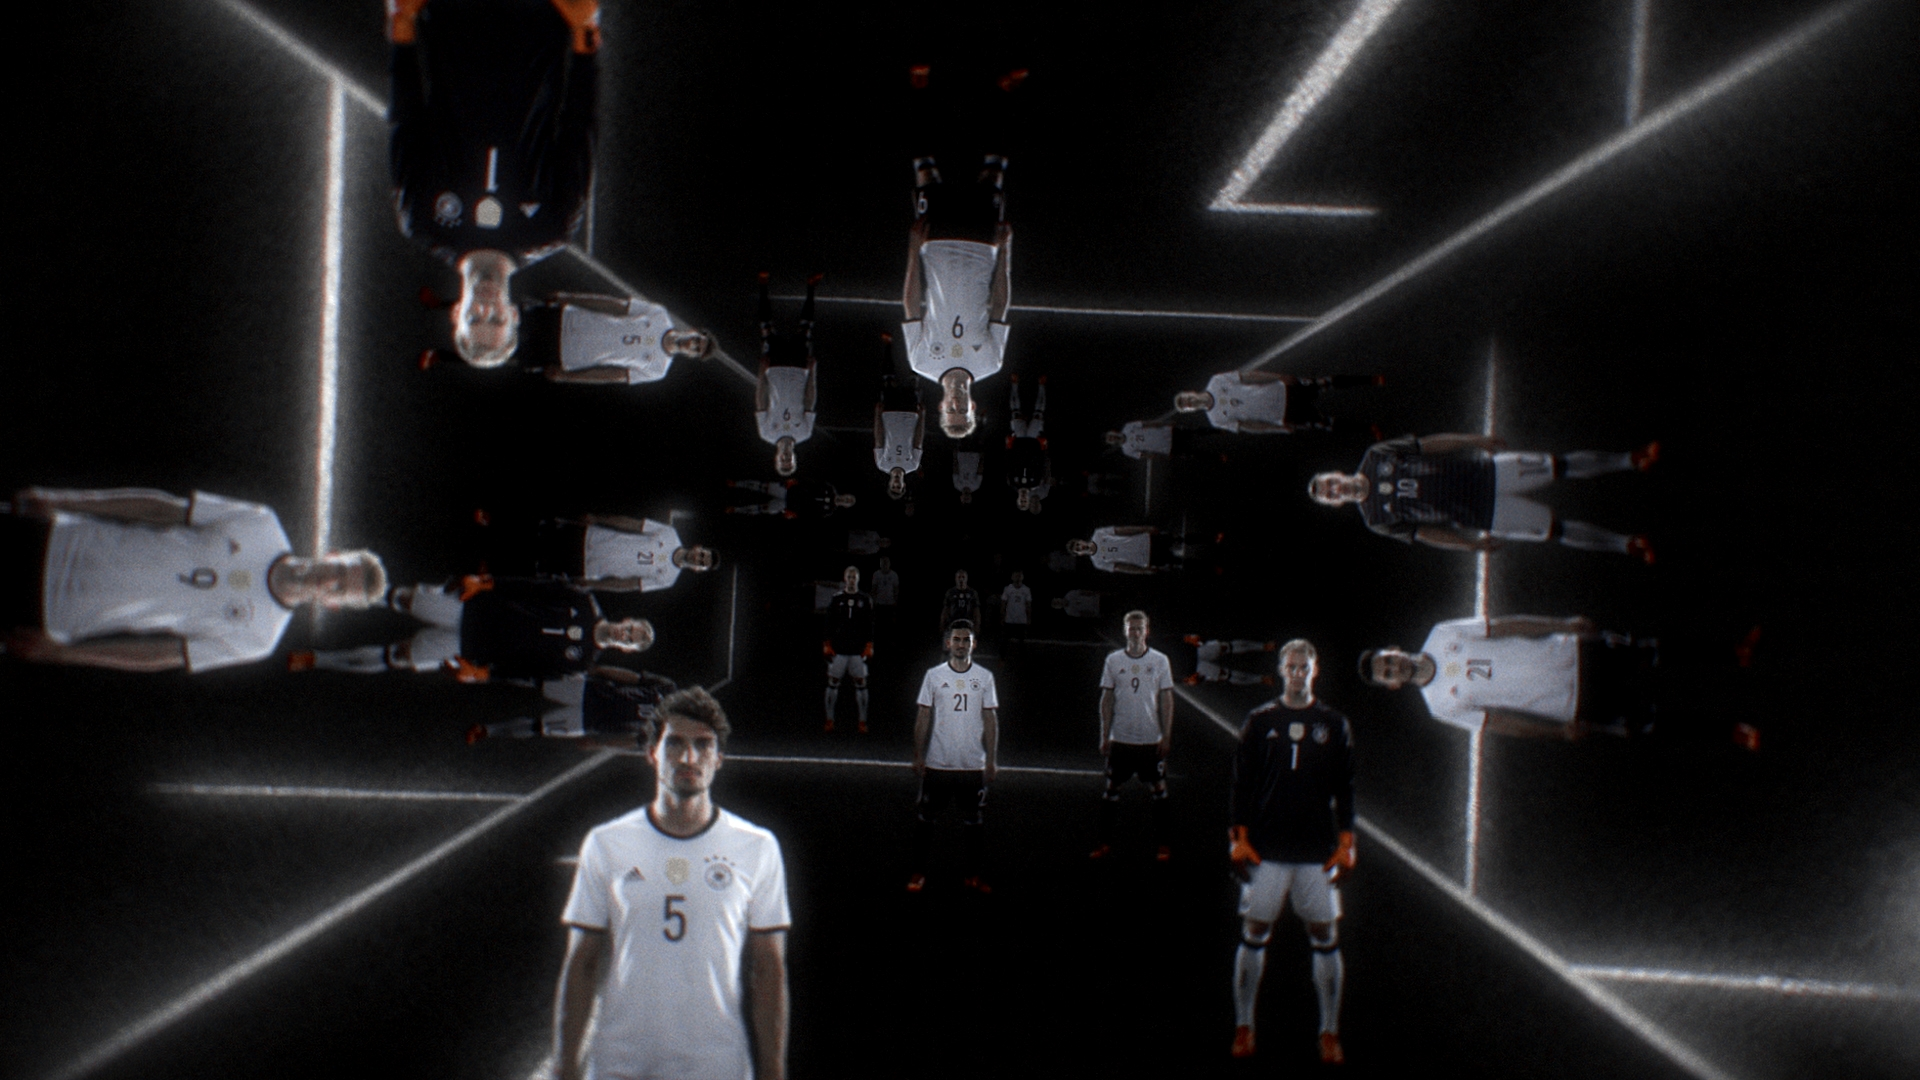 Adidas 'our pitch our rules' directed by Ben strebel @ caviar for Iris worldwide